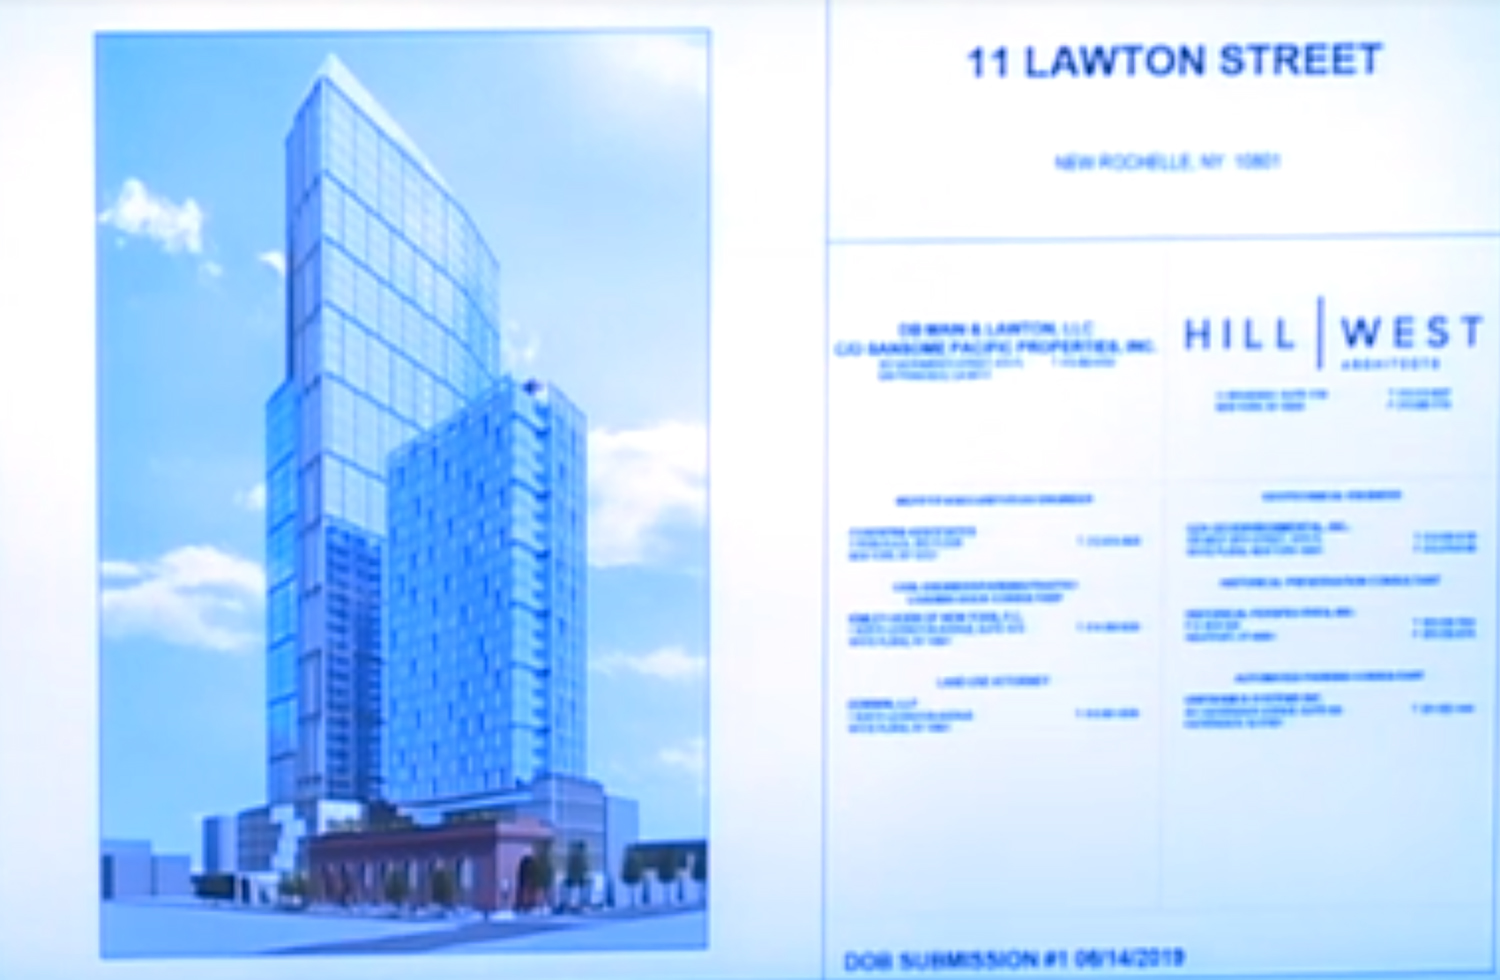 Rendering by Hill West of 11 Lawton Street